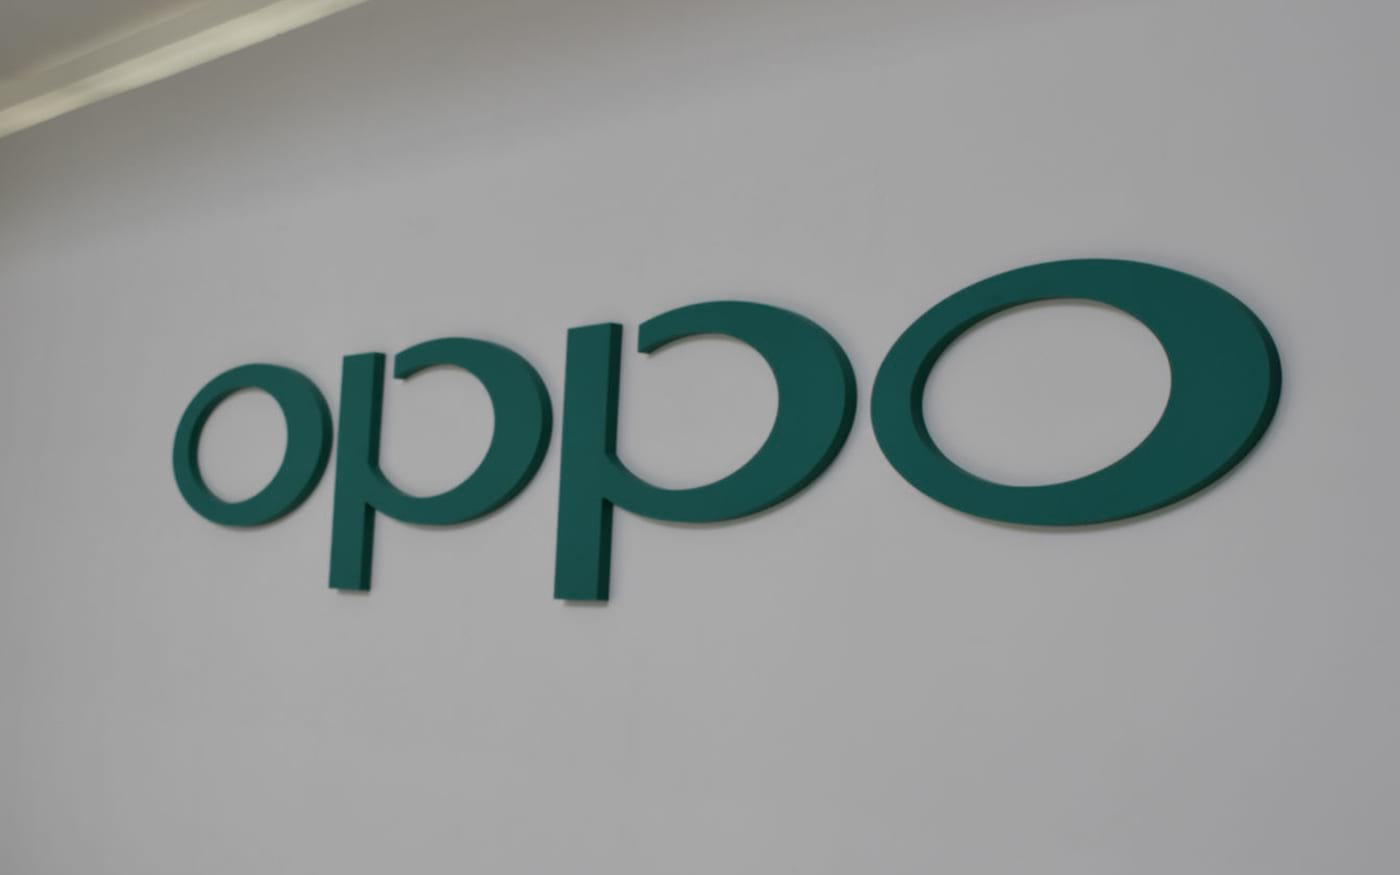 Smartwatch da Oppo terá recurso presente no Apple Watch